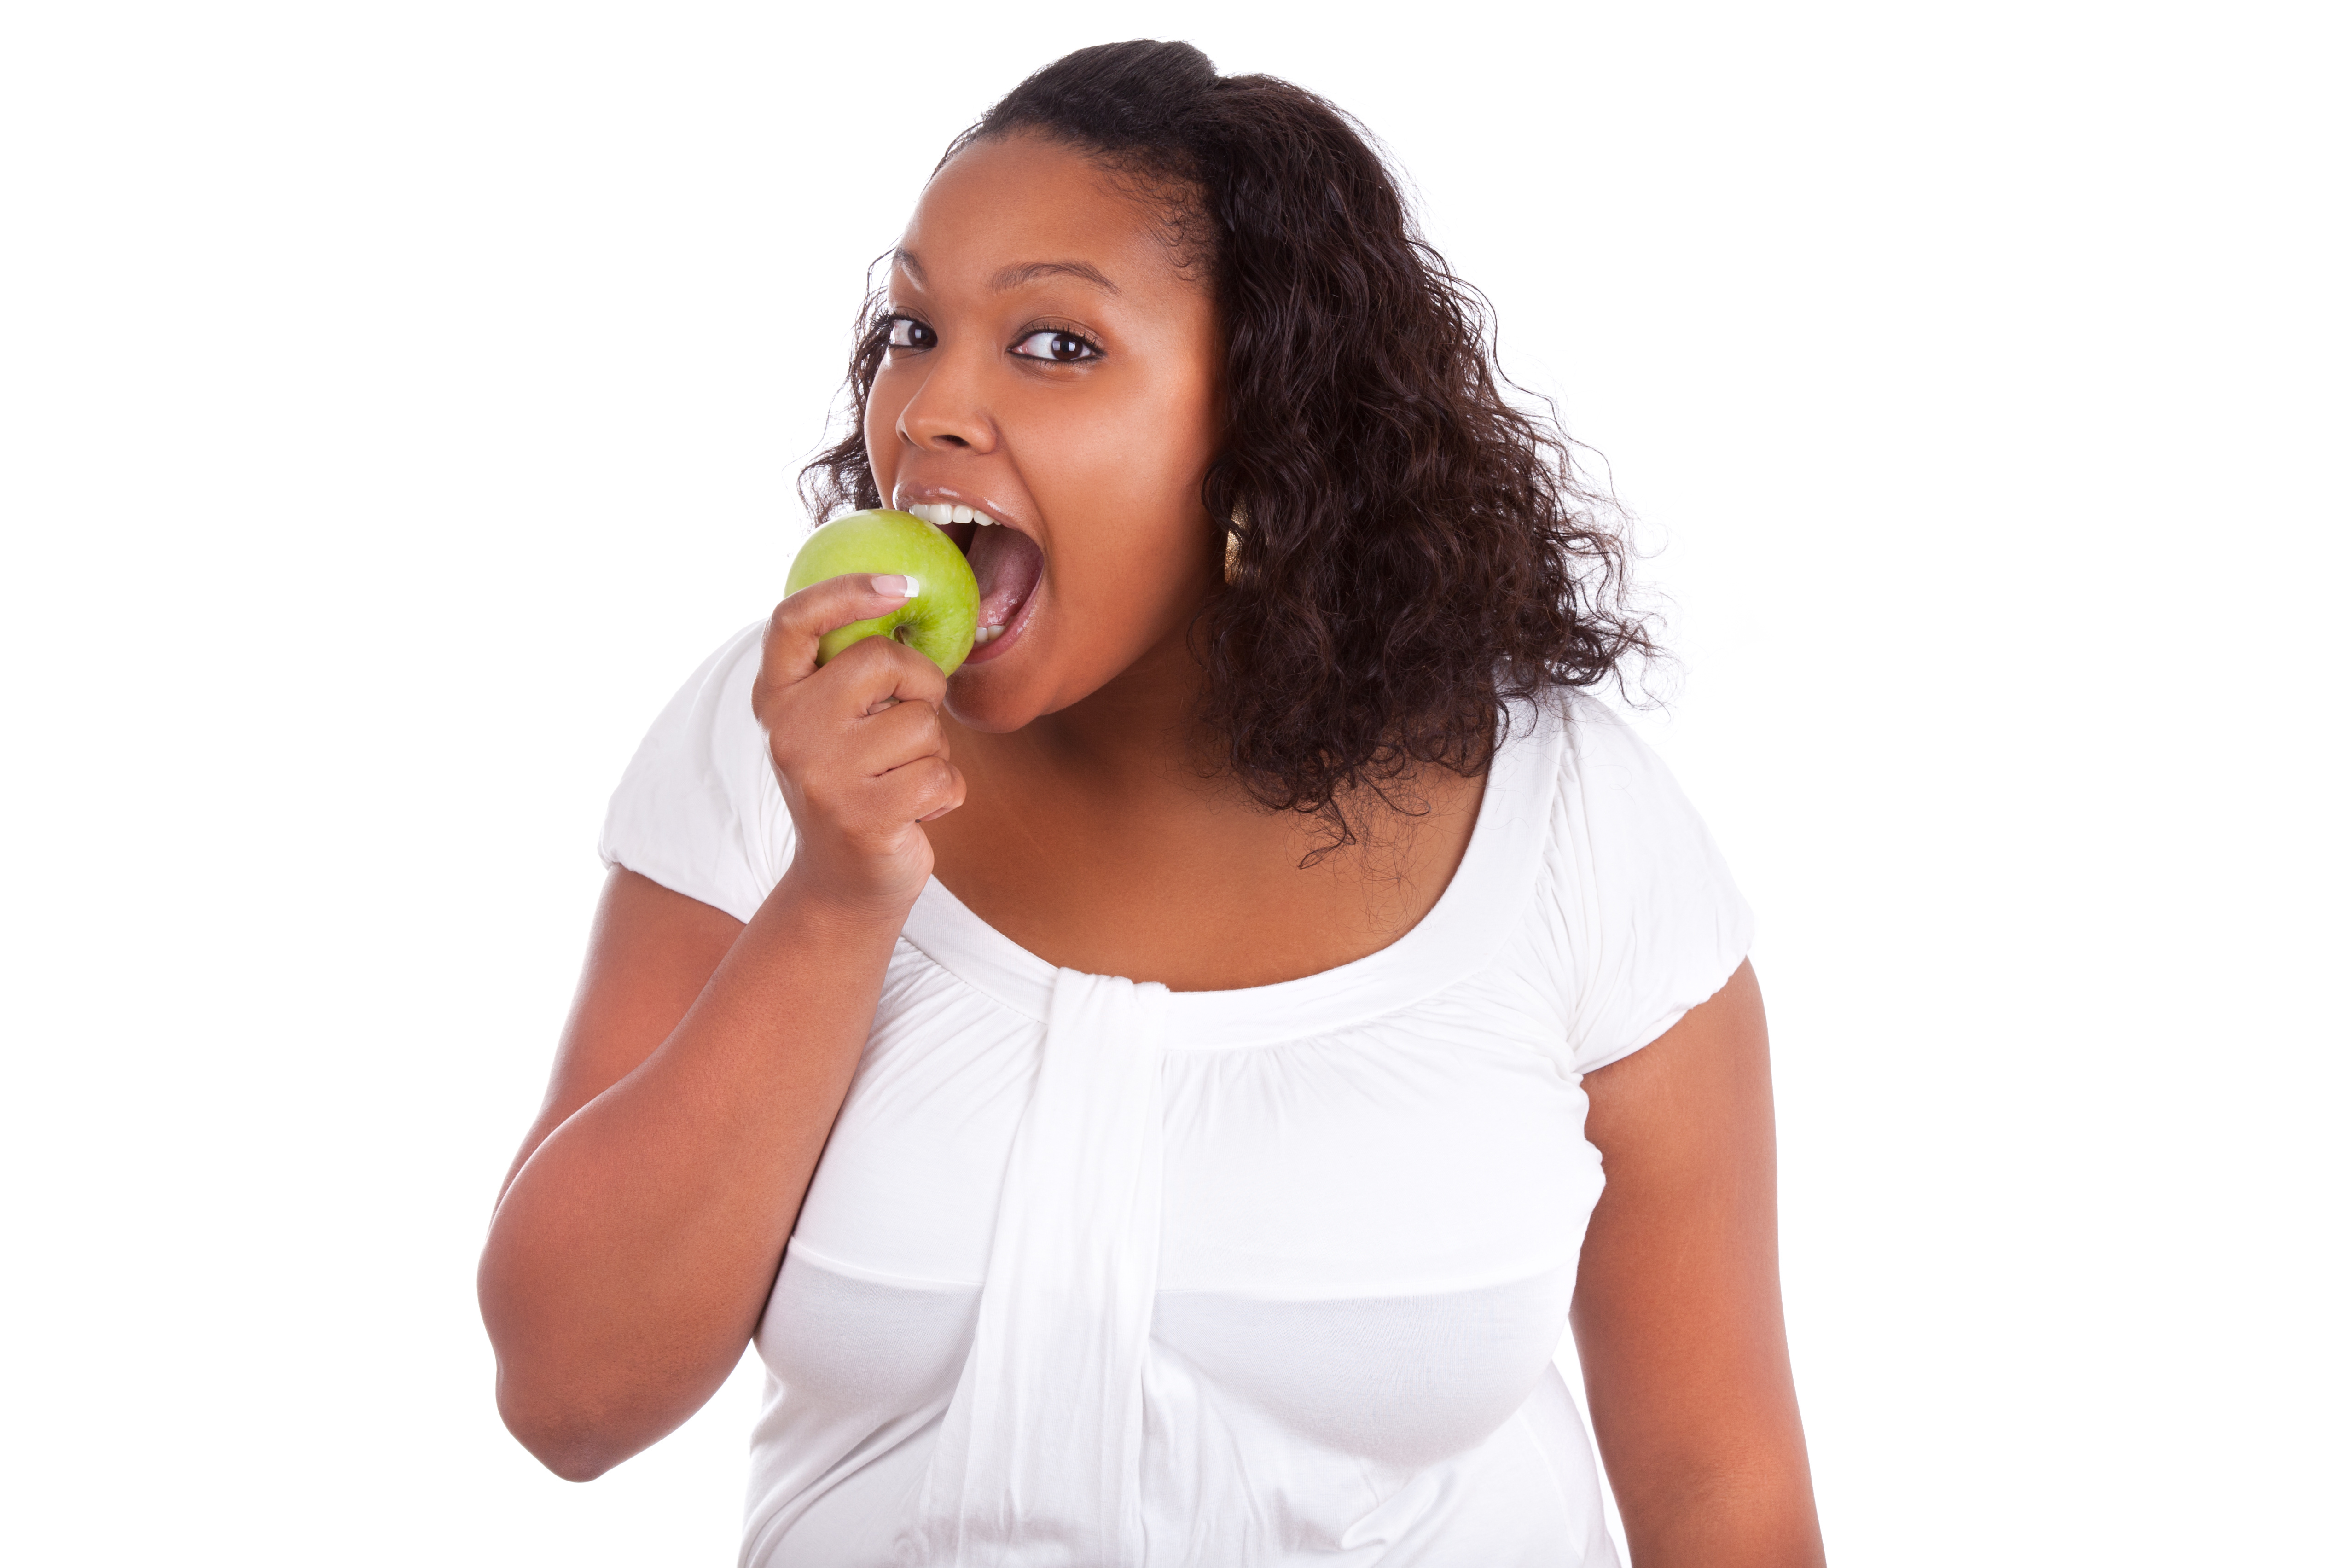 Young african american woman eating an apple